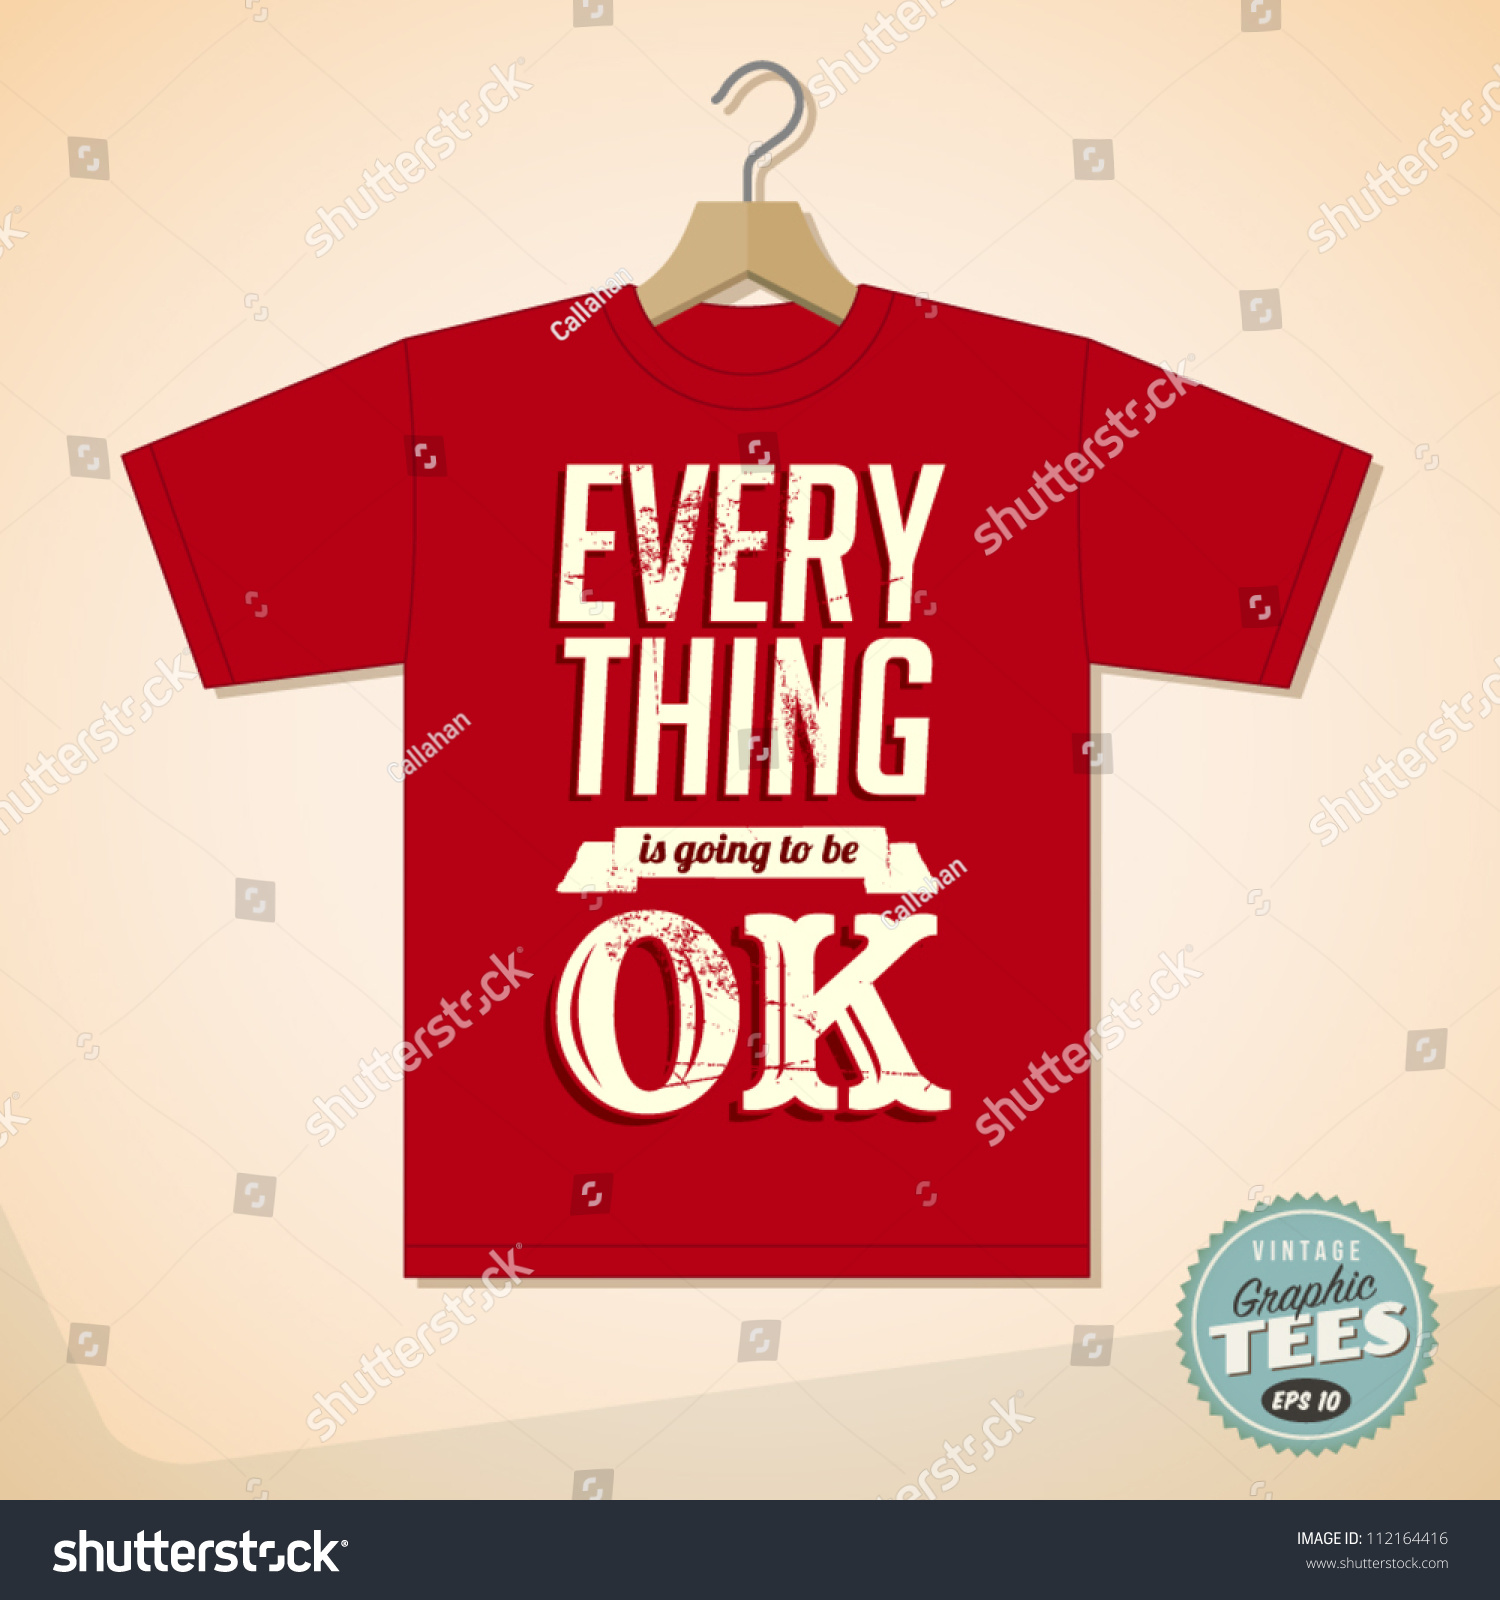 Shirt design vintage - Vintage Graphic T Shirt Design Everything Is Going To Be Ok Vector Eps10